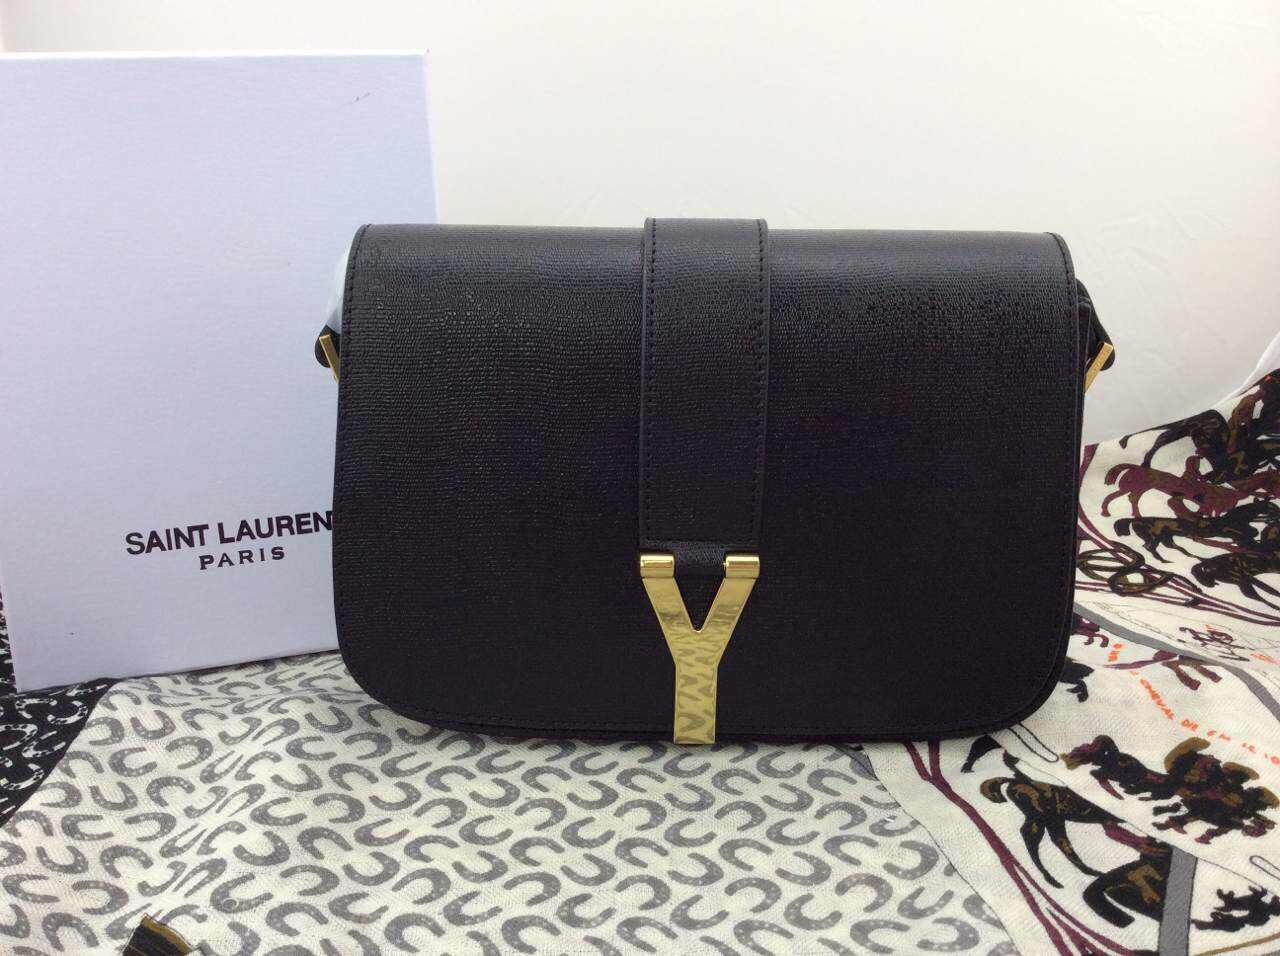 2015 New Saint Laurent Bag Cheap Sale-Saint Laurent Classic Medium Monogram UNIVERSITE BAG in Black Gained Leather